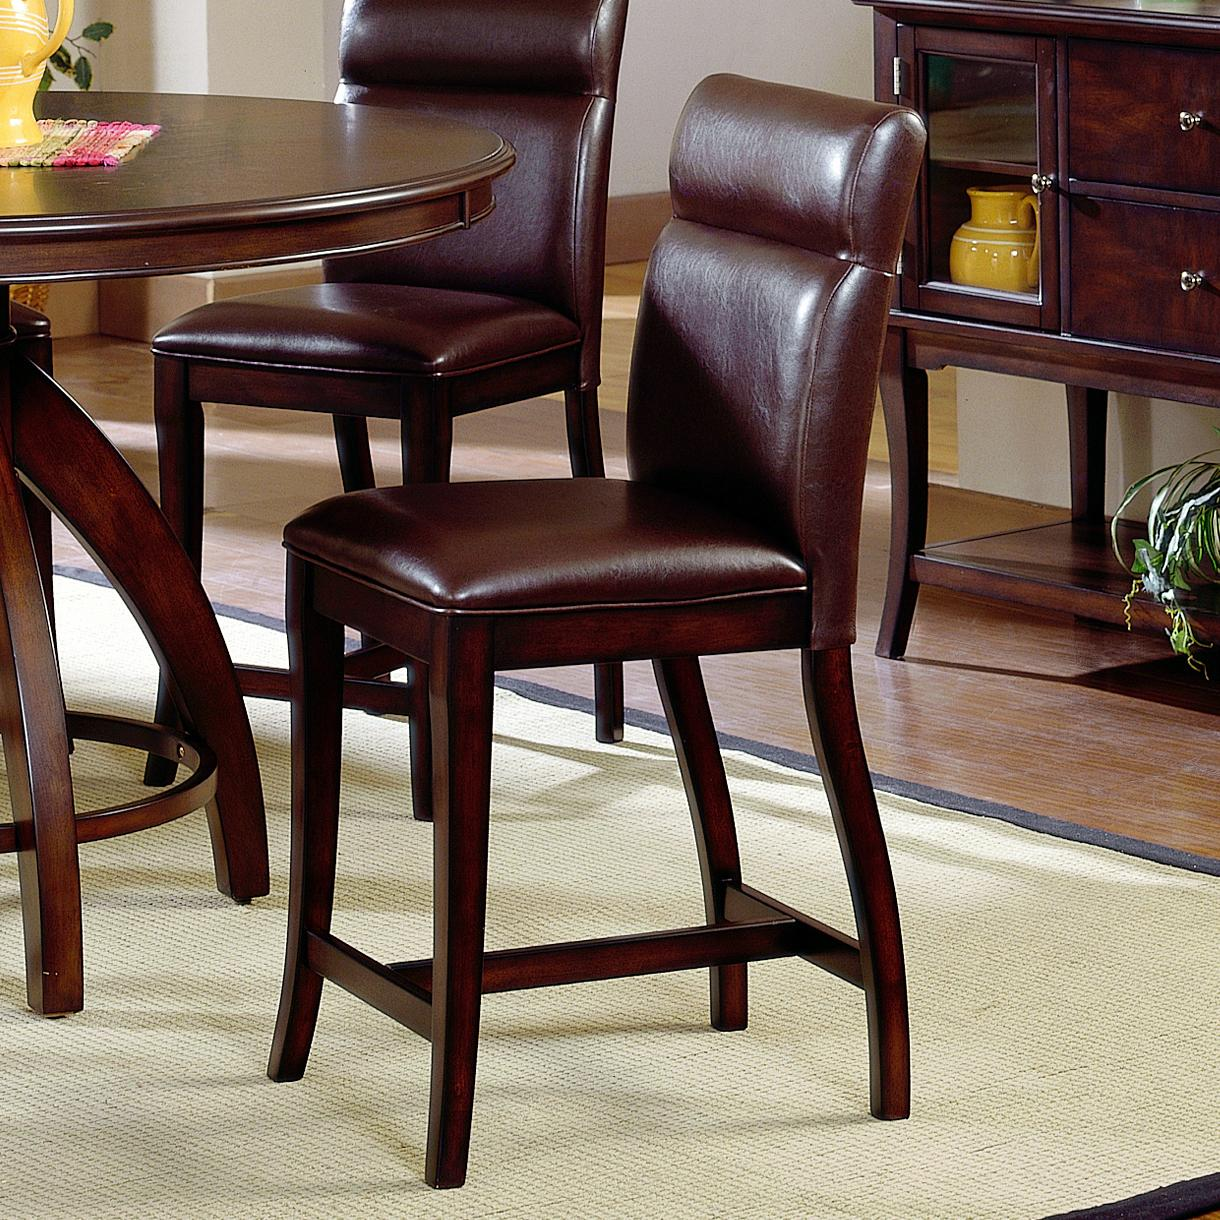 Hillsdale Nottingham Counter Height Dining Chair - Item Number: 4077-822